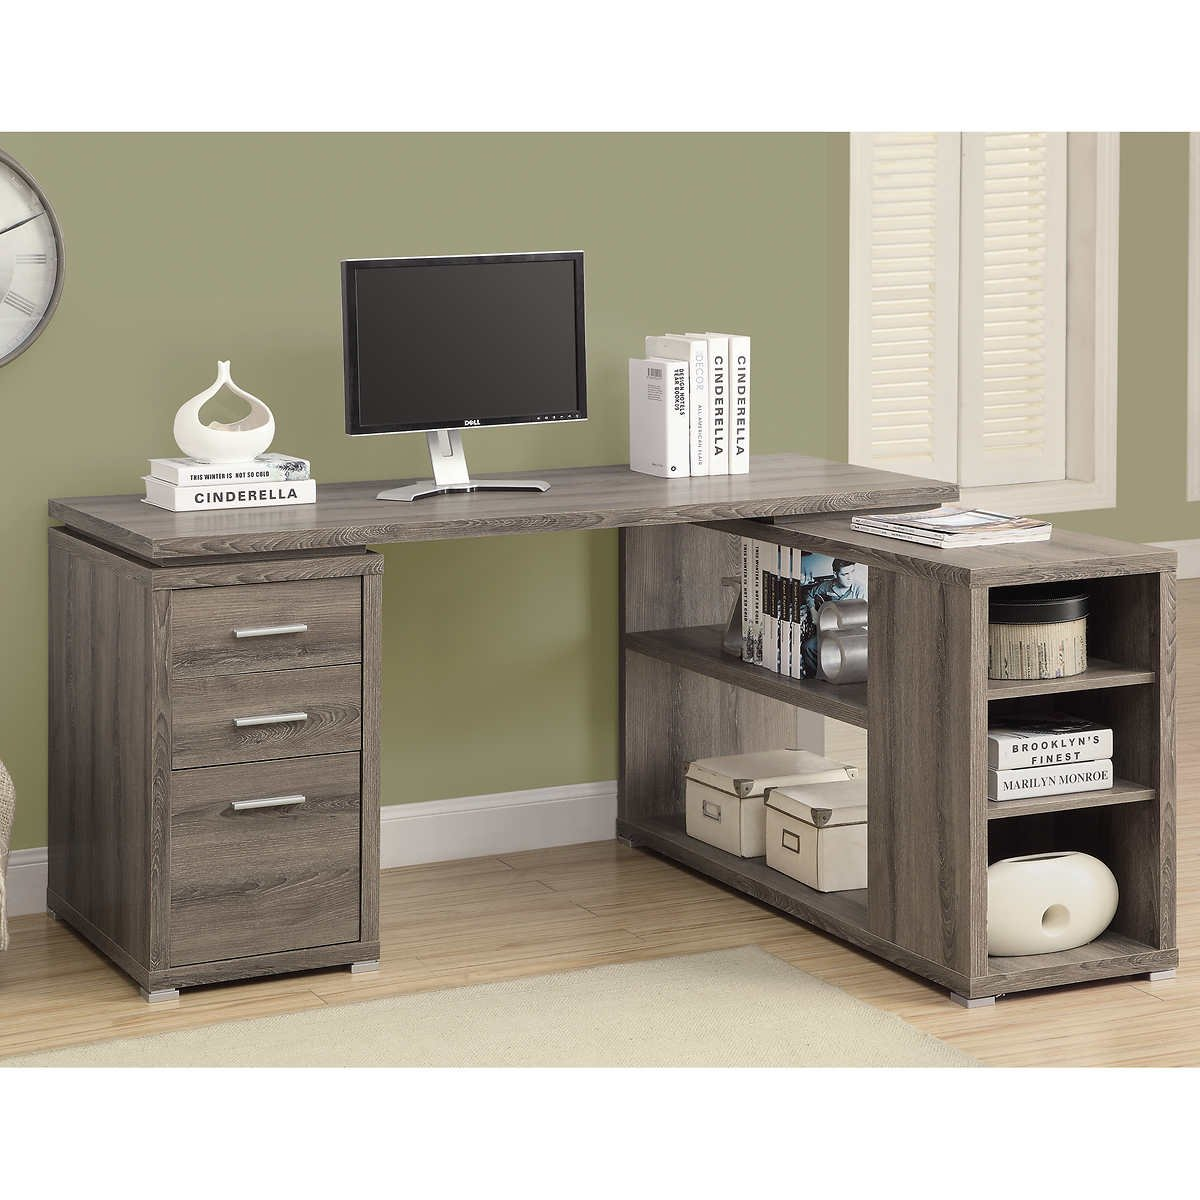 Grey Modern Left / Right Facing Corner Desk Workstation | Perfect Contemporary Home Office or College Student Dorm Room Storage Table for Your Computer, PC, Laptop, Monitor, Books, Papers and Supplies